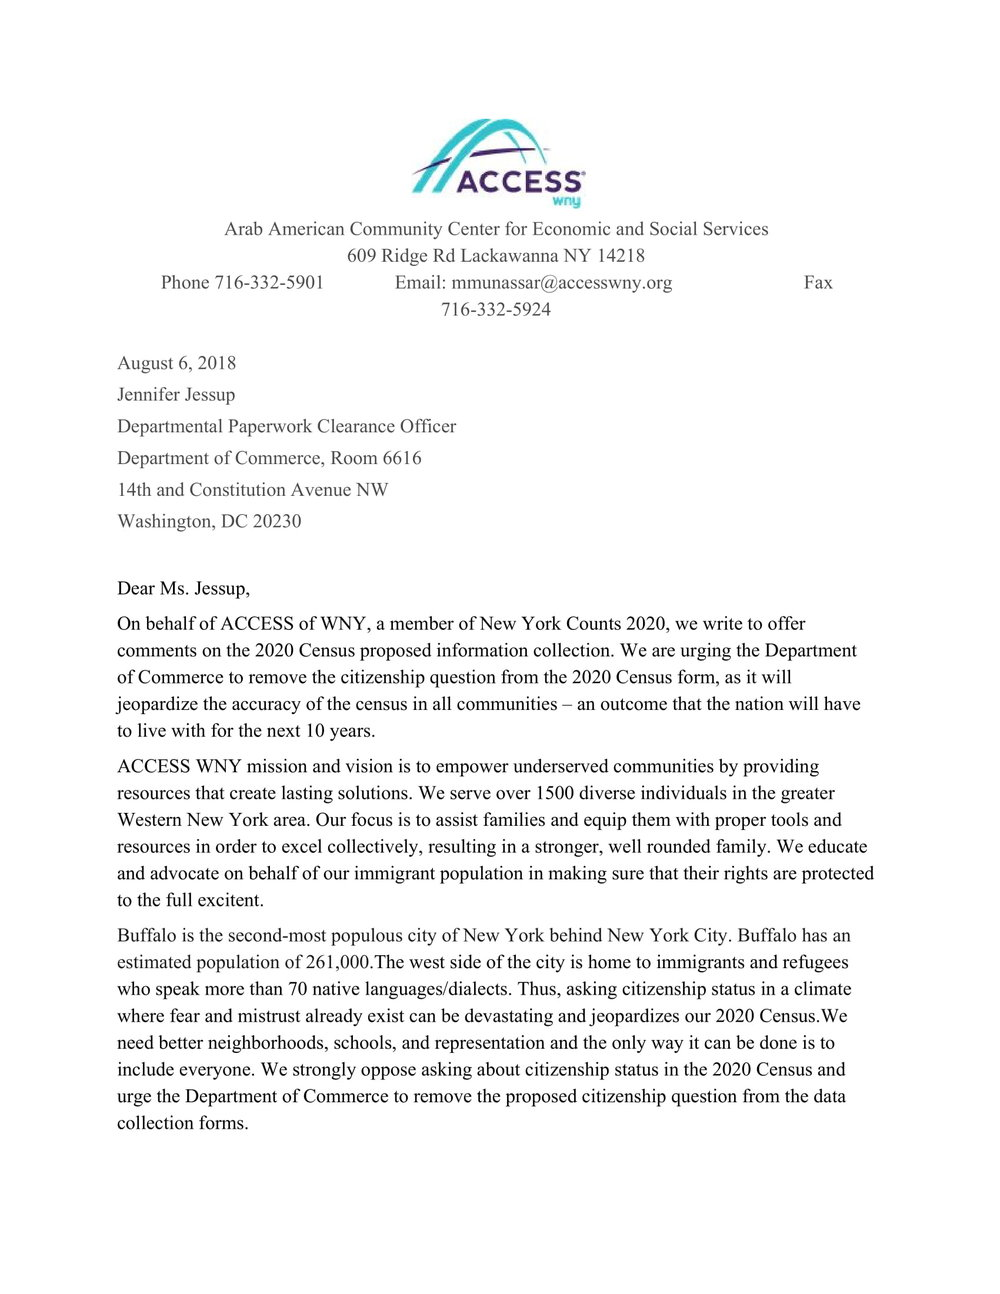 ACCESS WNY public comments for US Census 2020-1.jpg